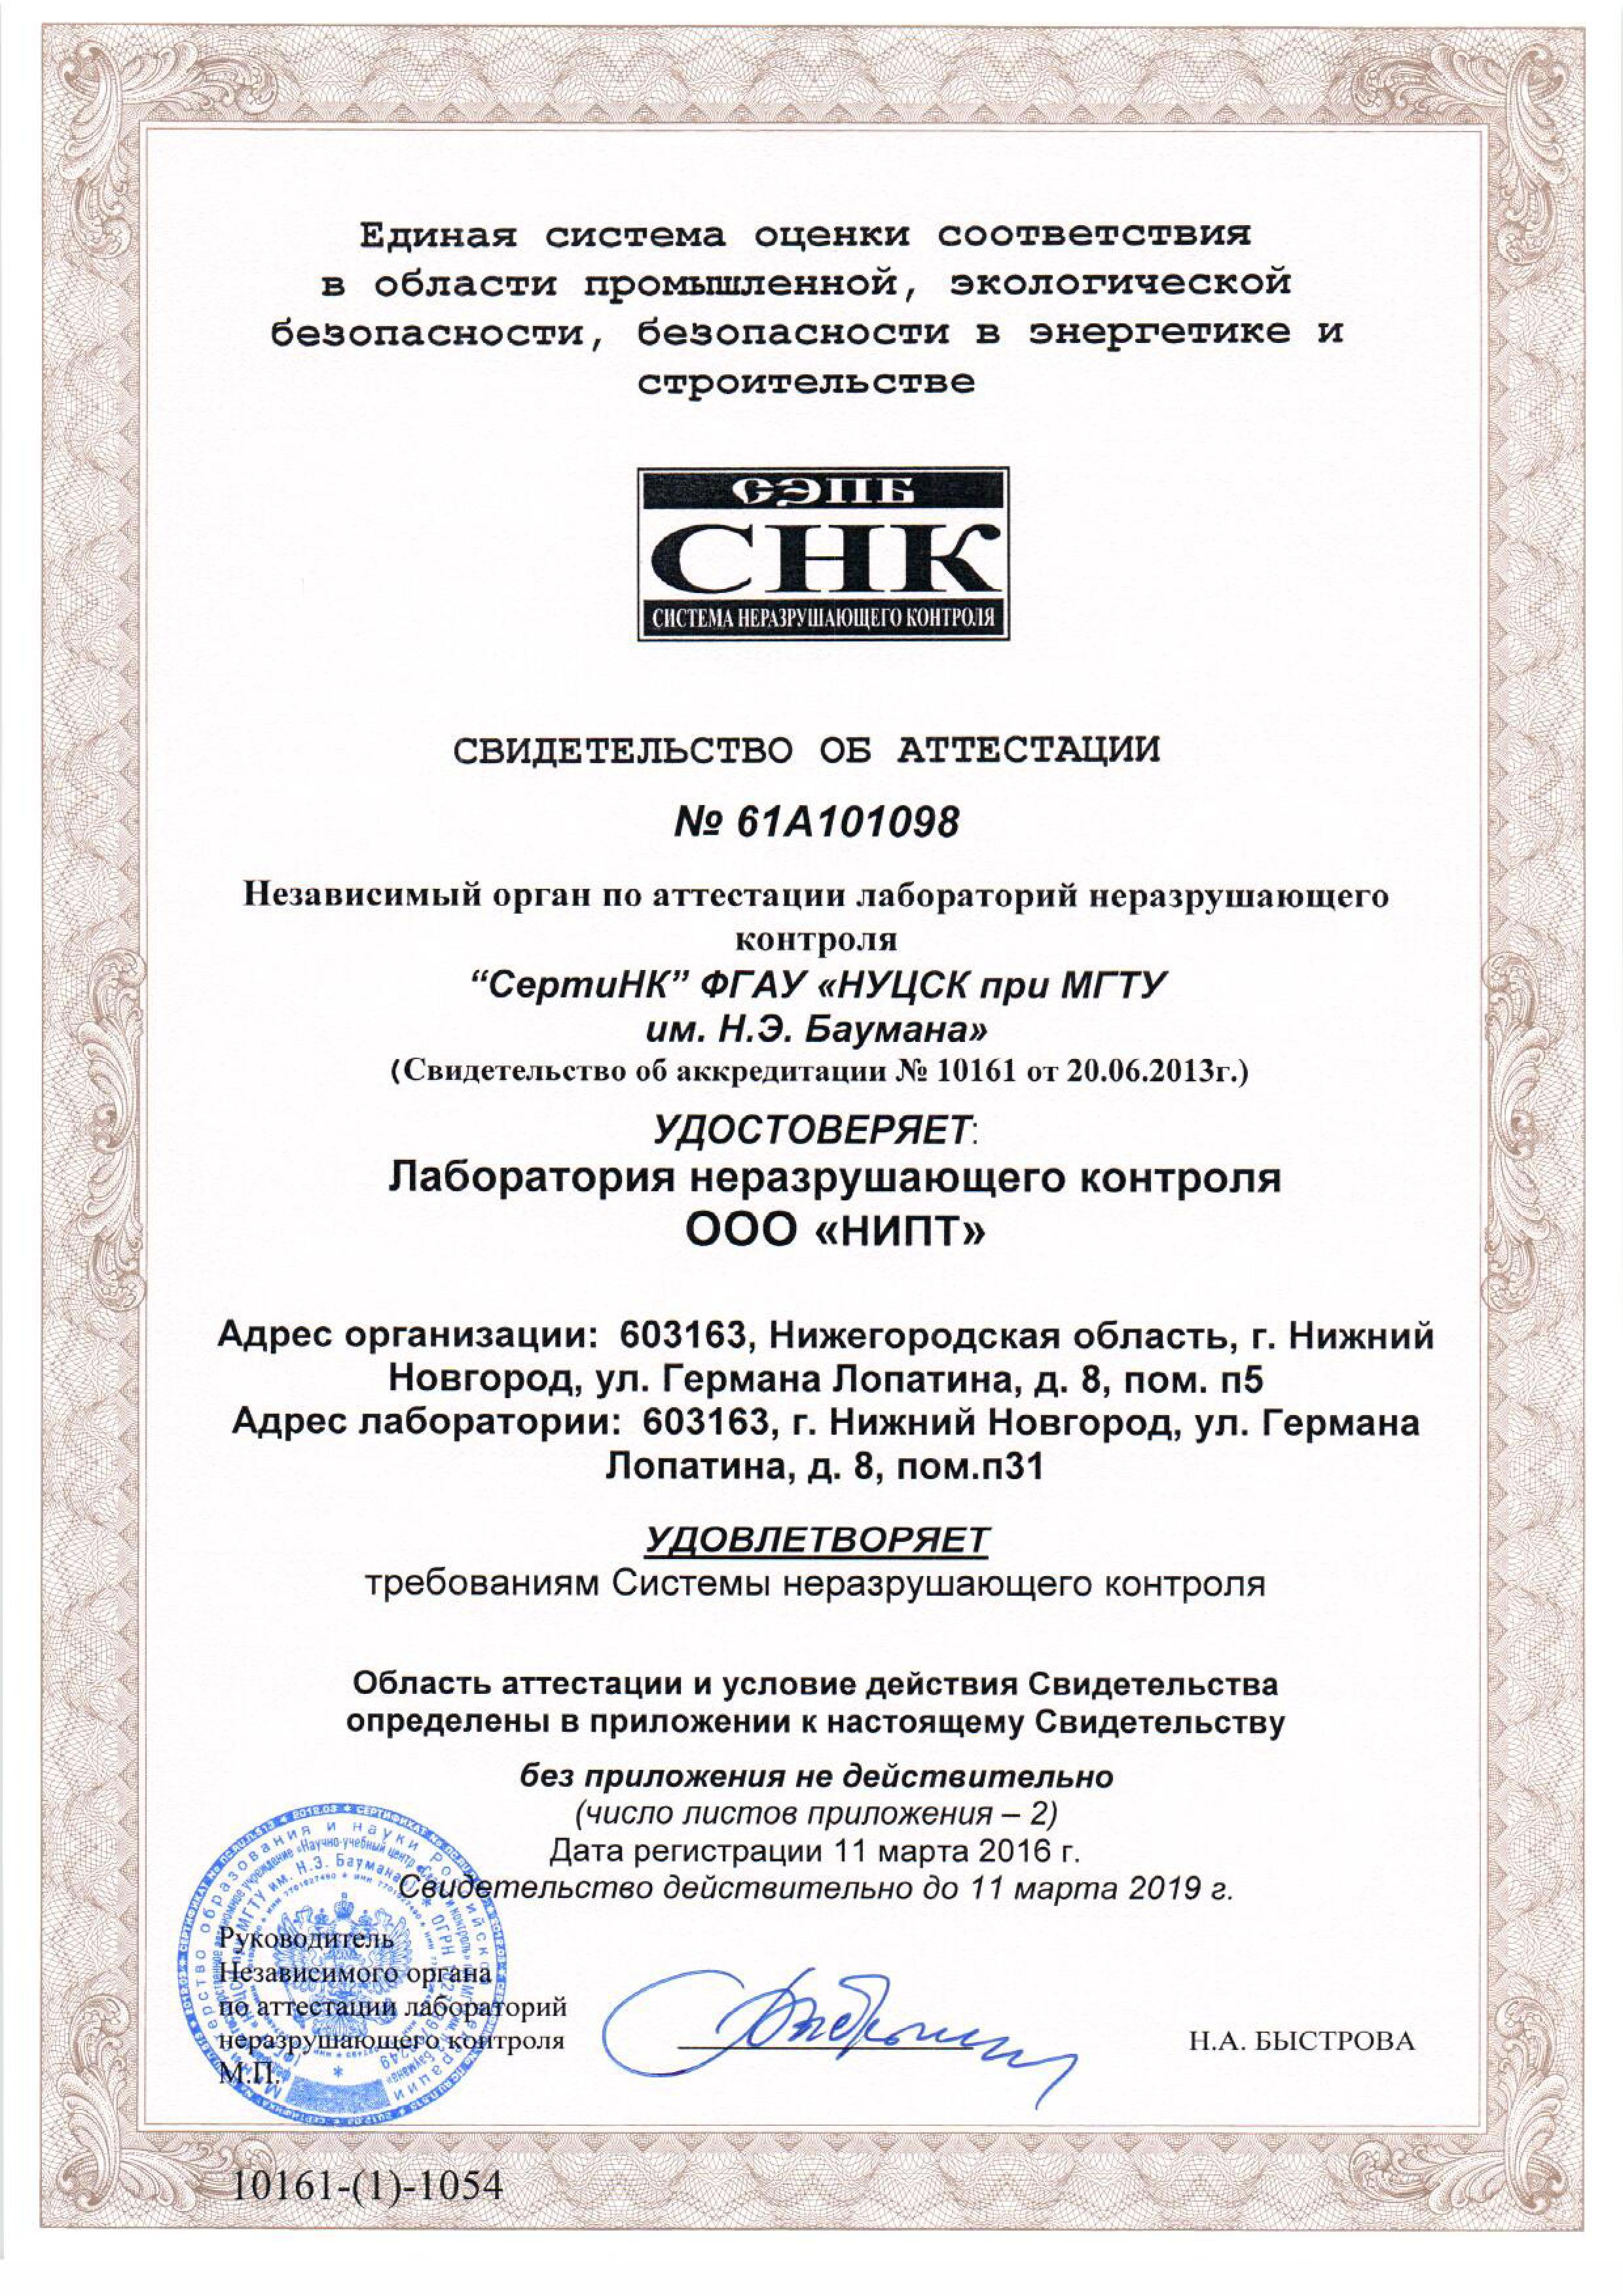 Nondestructive testing laboratory was created in Nizhny Novgorod Institute of Applied Technologies